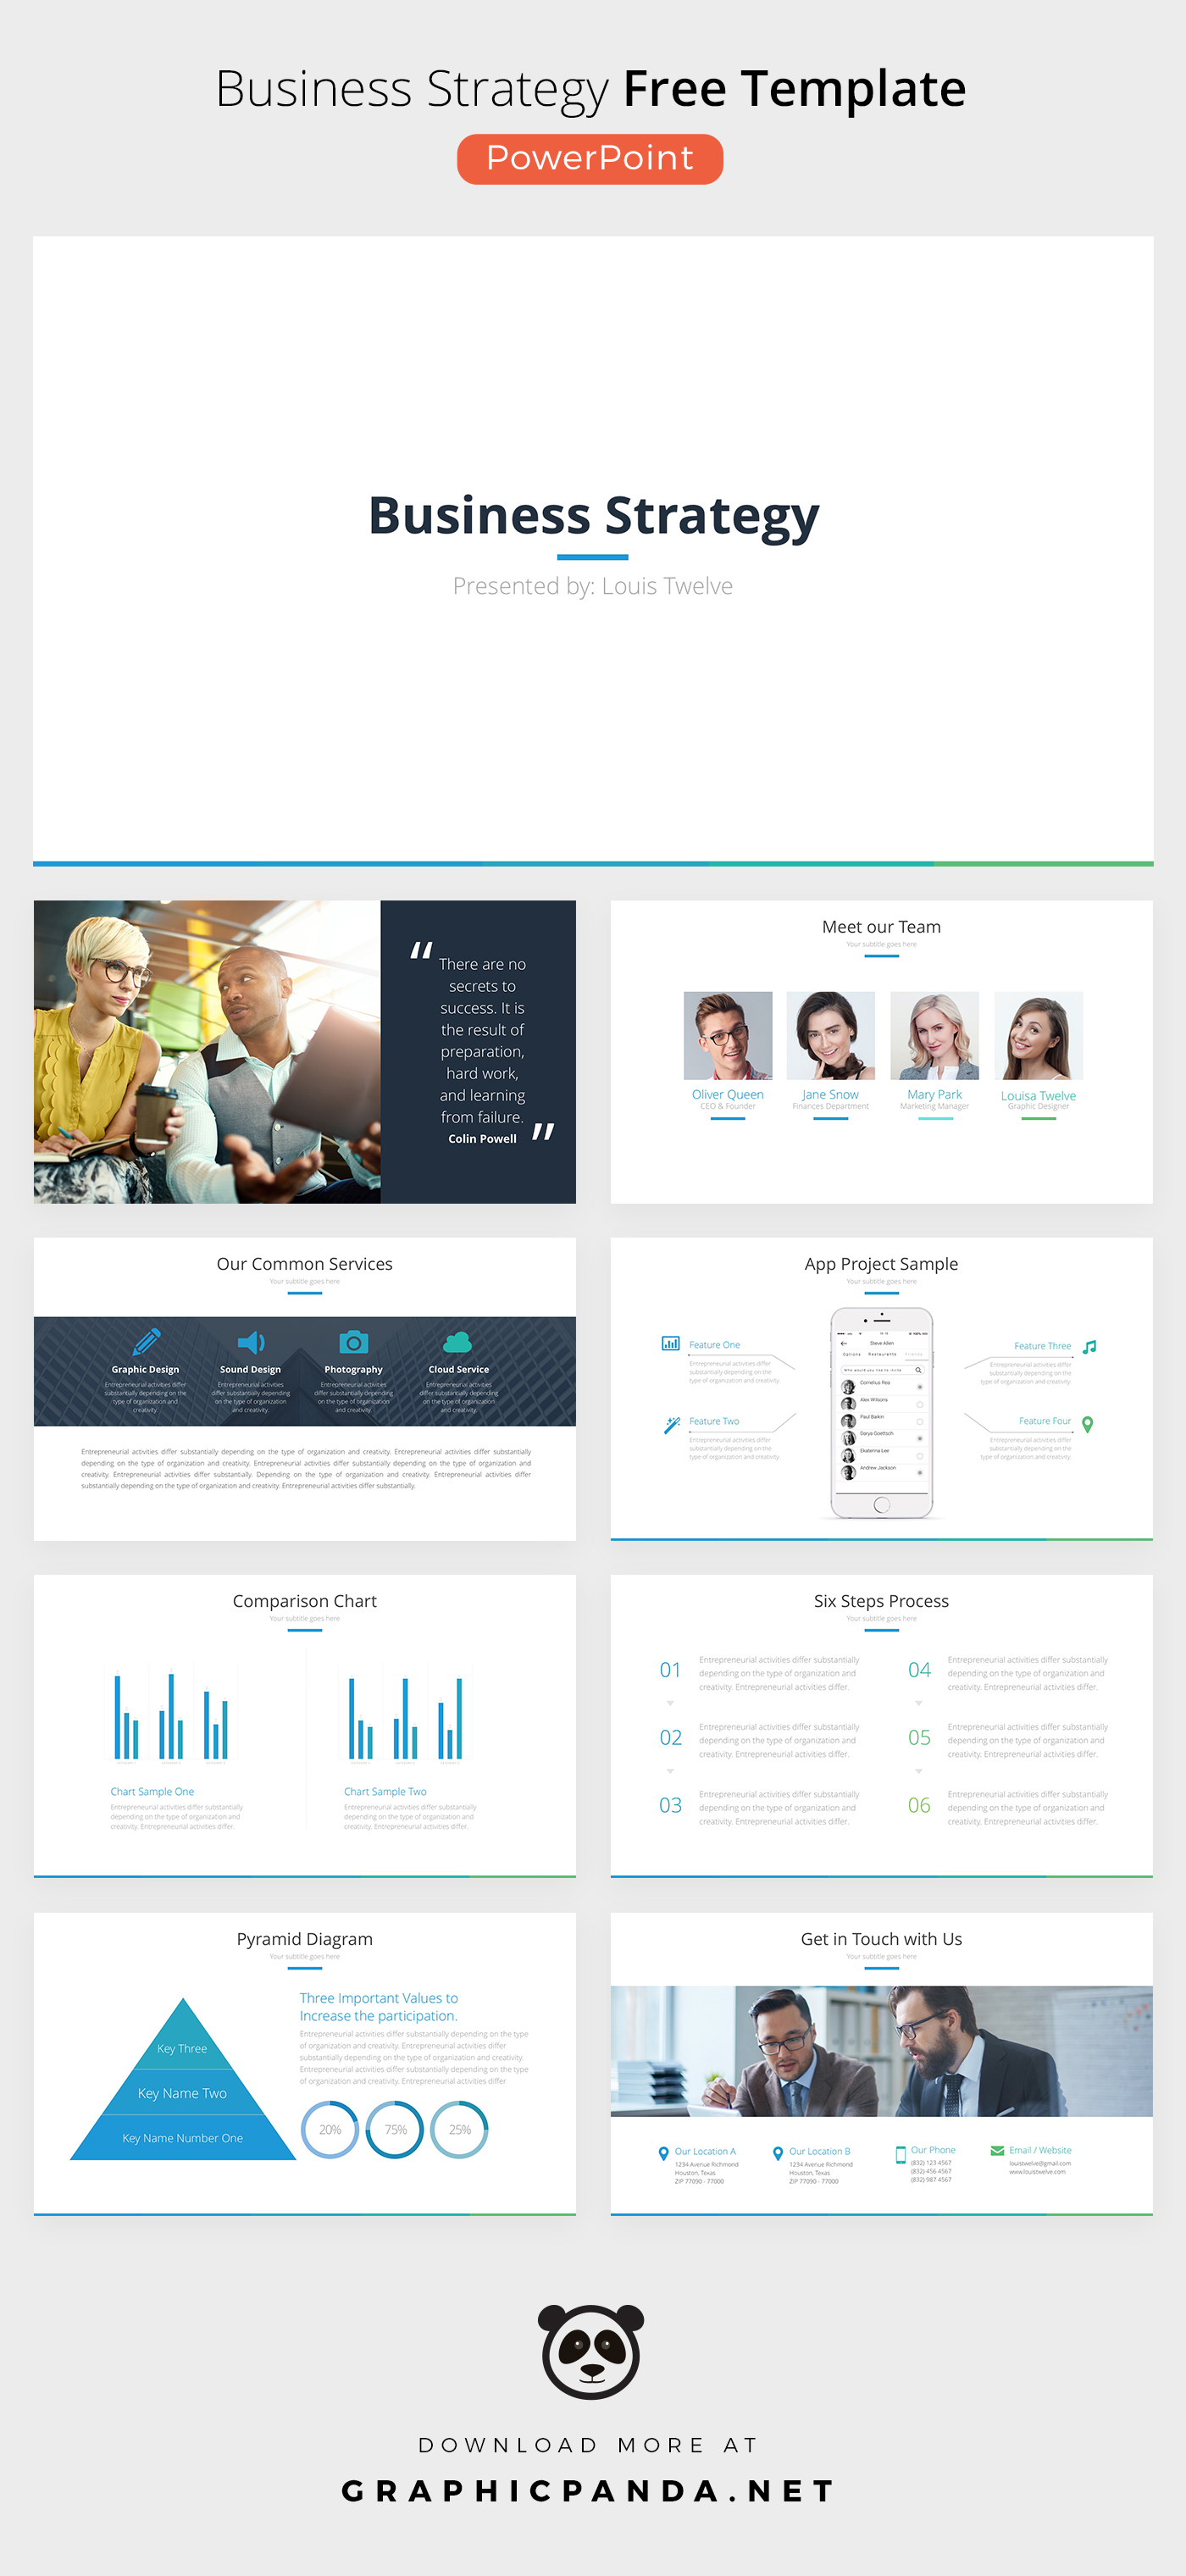 Free business strategy powerpoint template on behance if youre struggling with making a well designed presentation then this business strategy free powerpoint template can help you achieve the creative and cheaphphosting